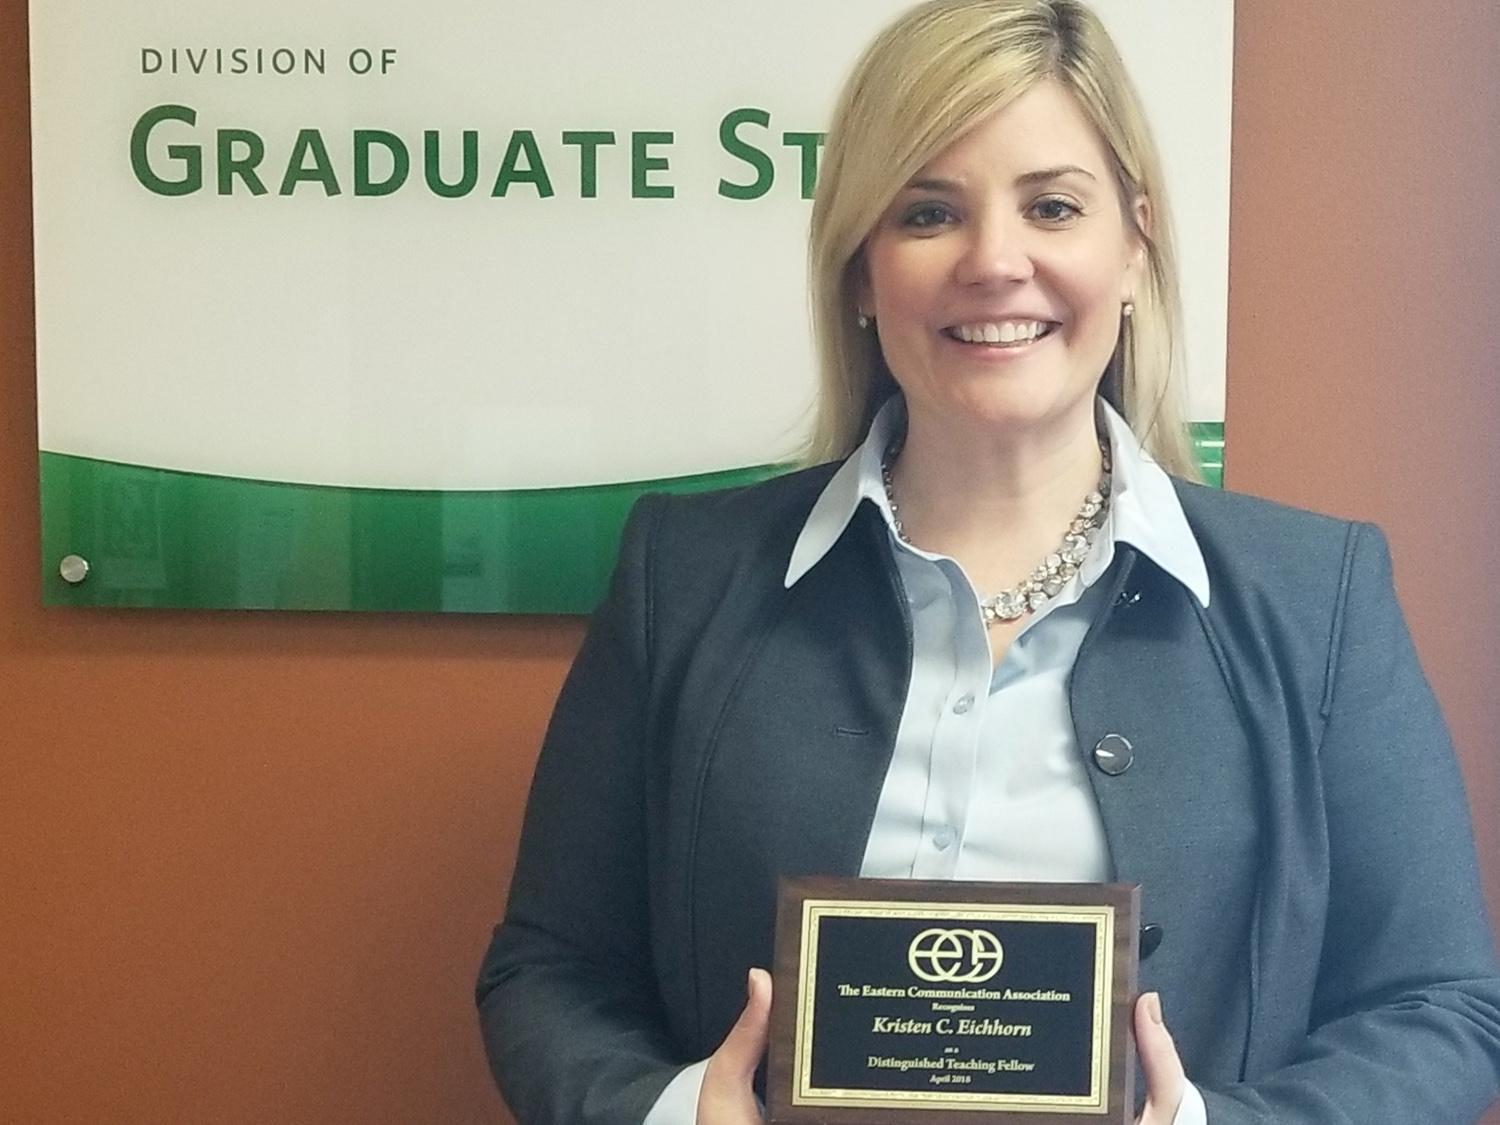 Kristen Eichhorn earns a distinguished teaching award from a top organization